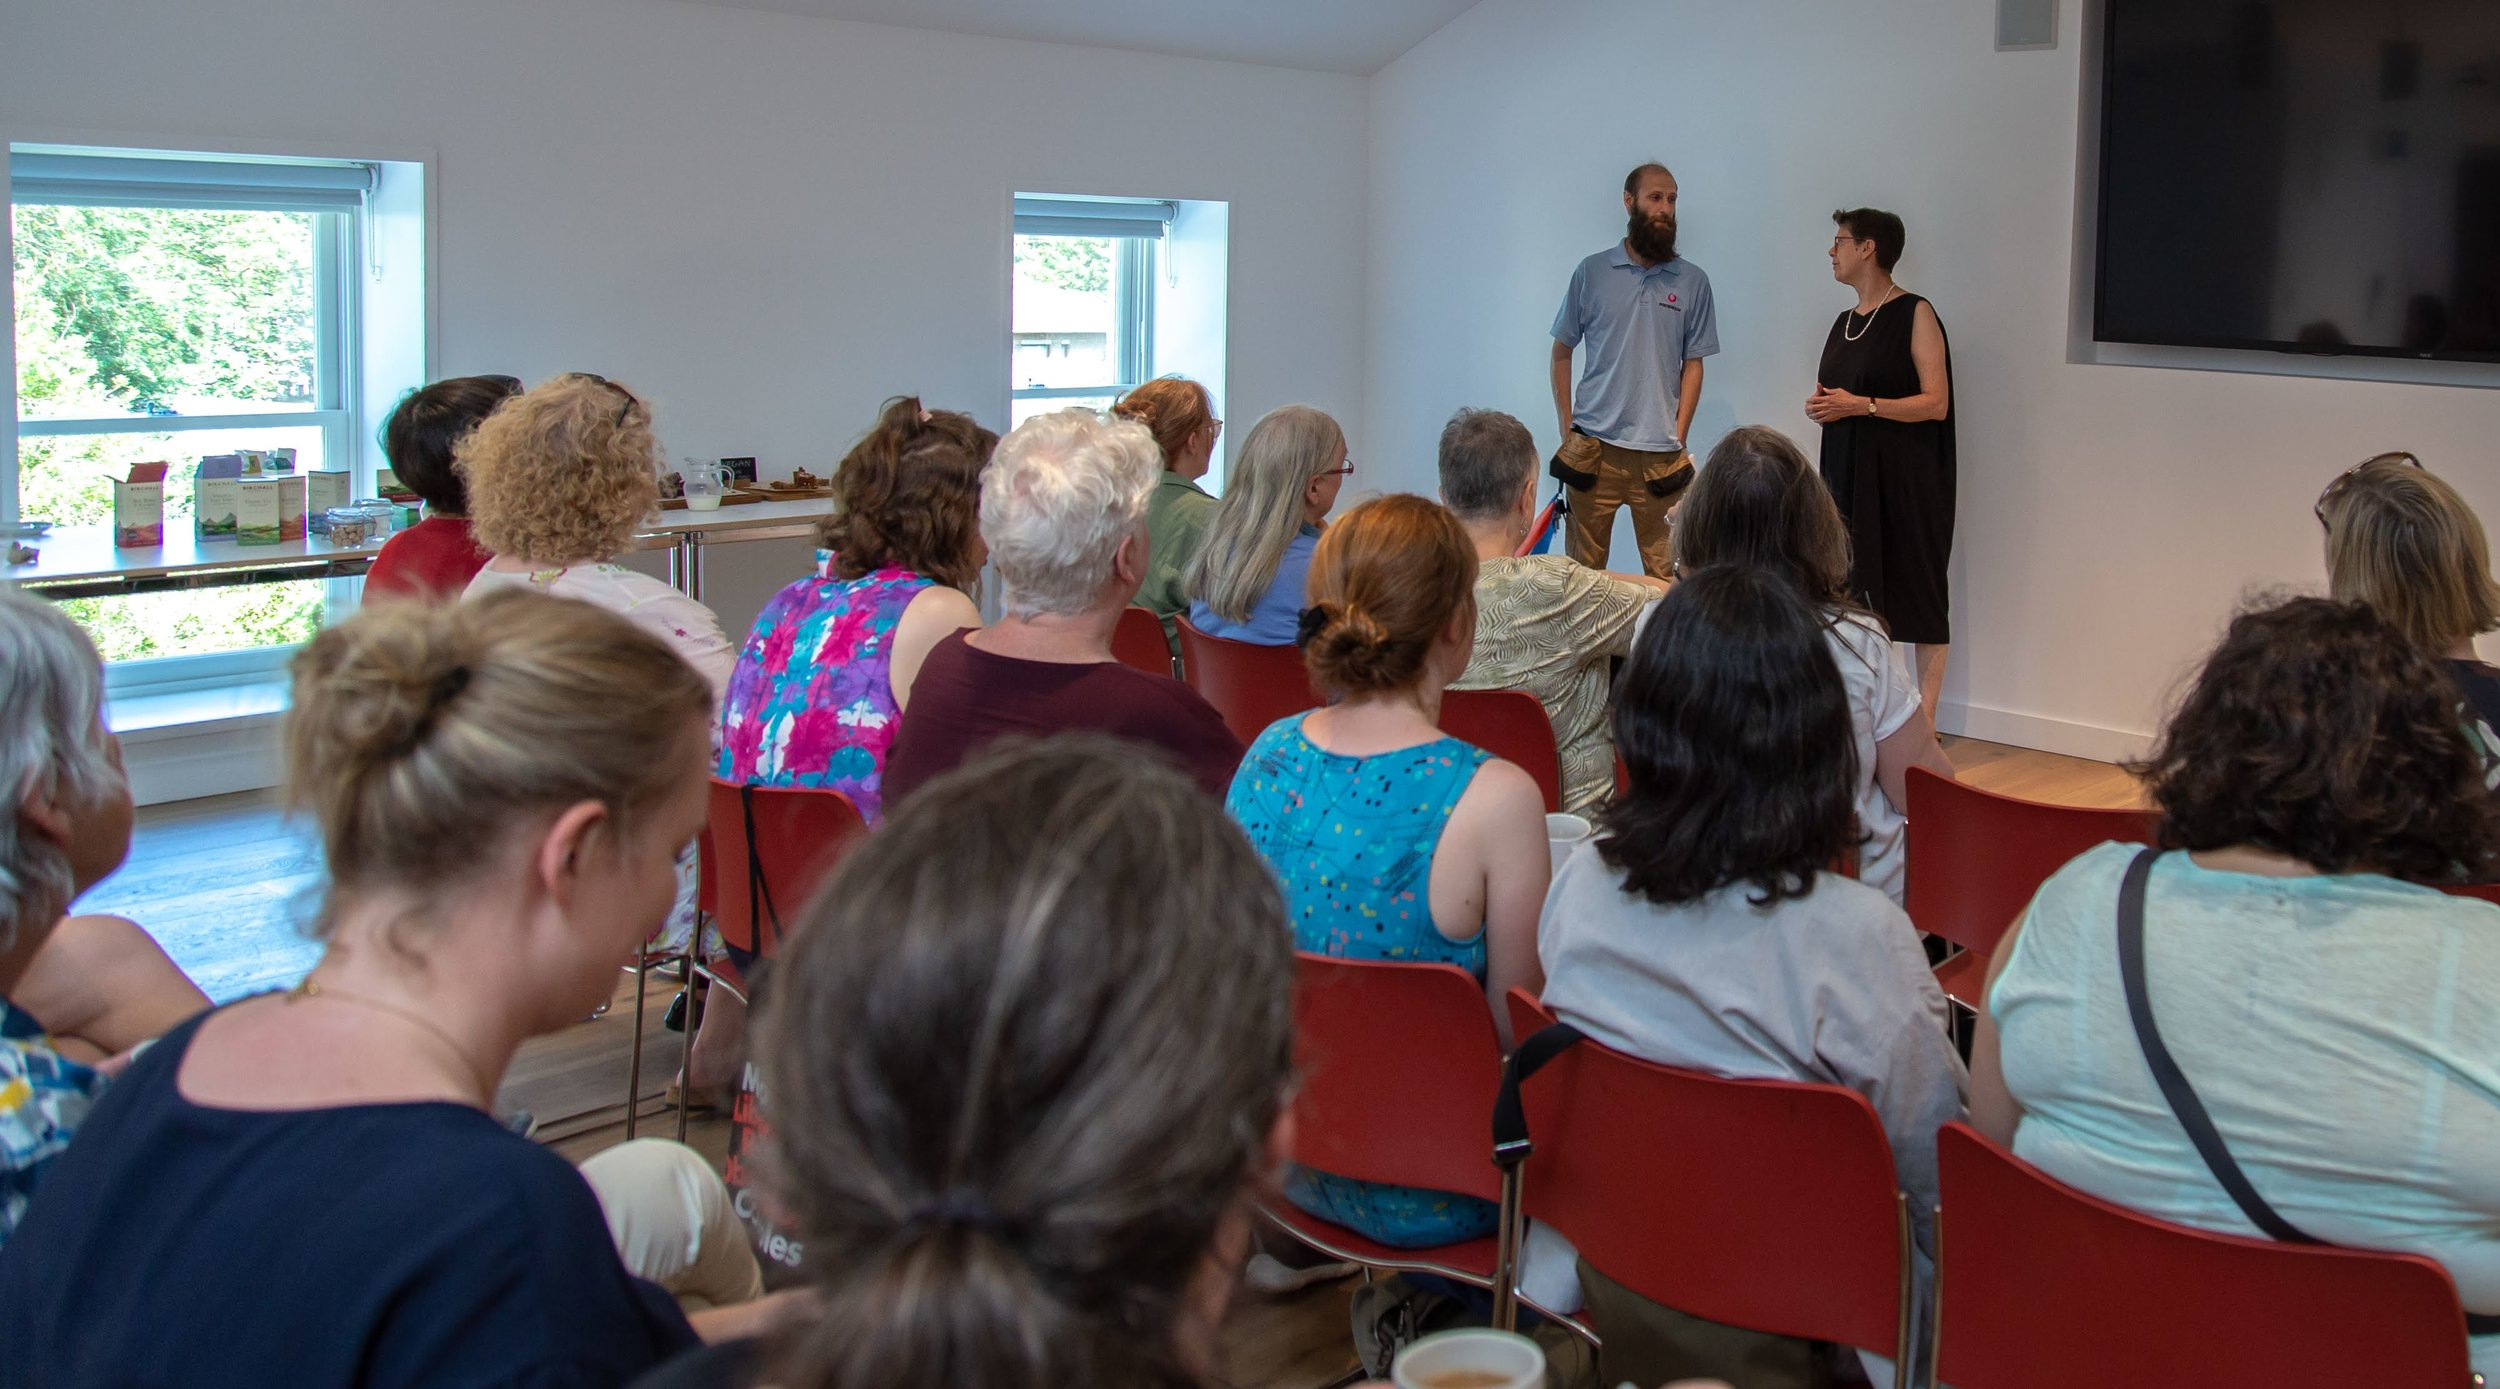 TT and Eliot and audience CamCrag talk.jpg